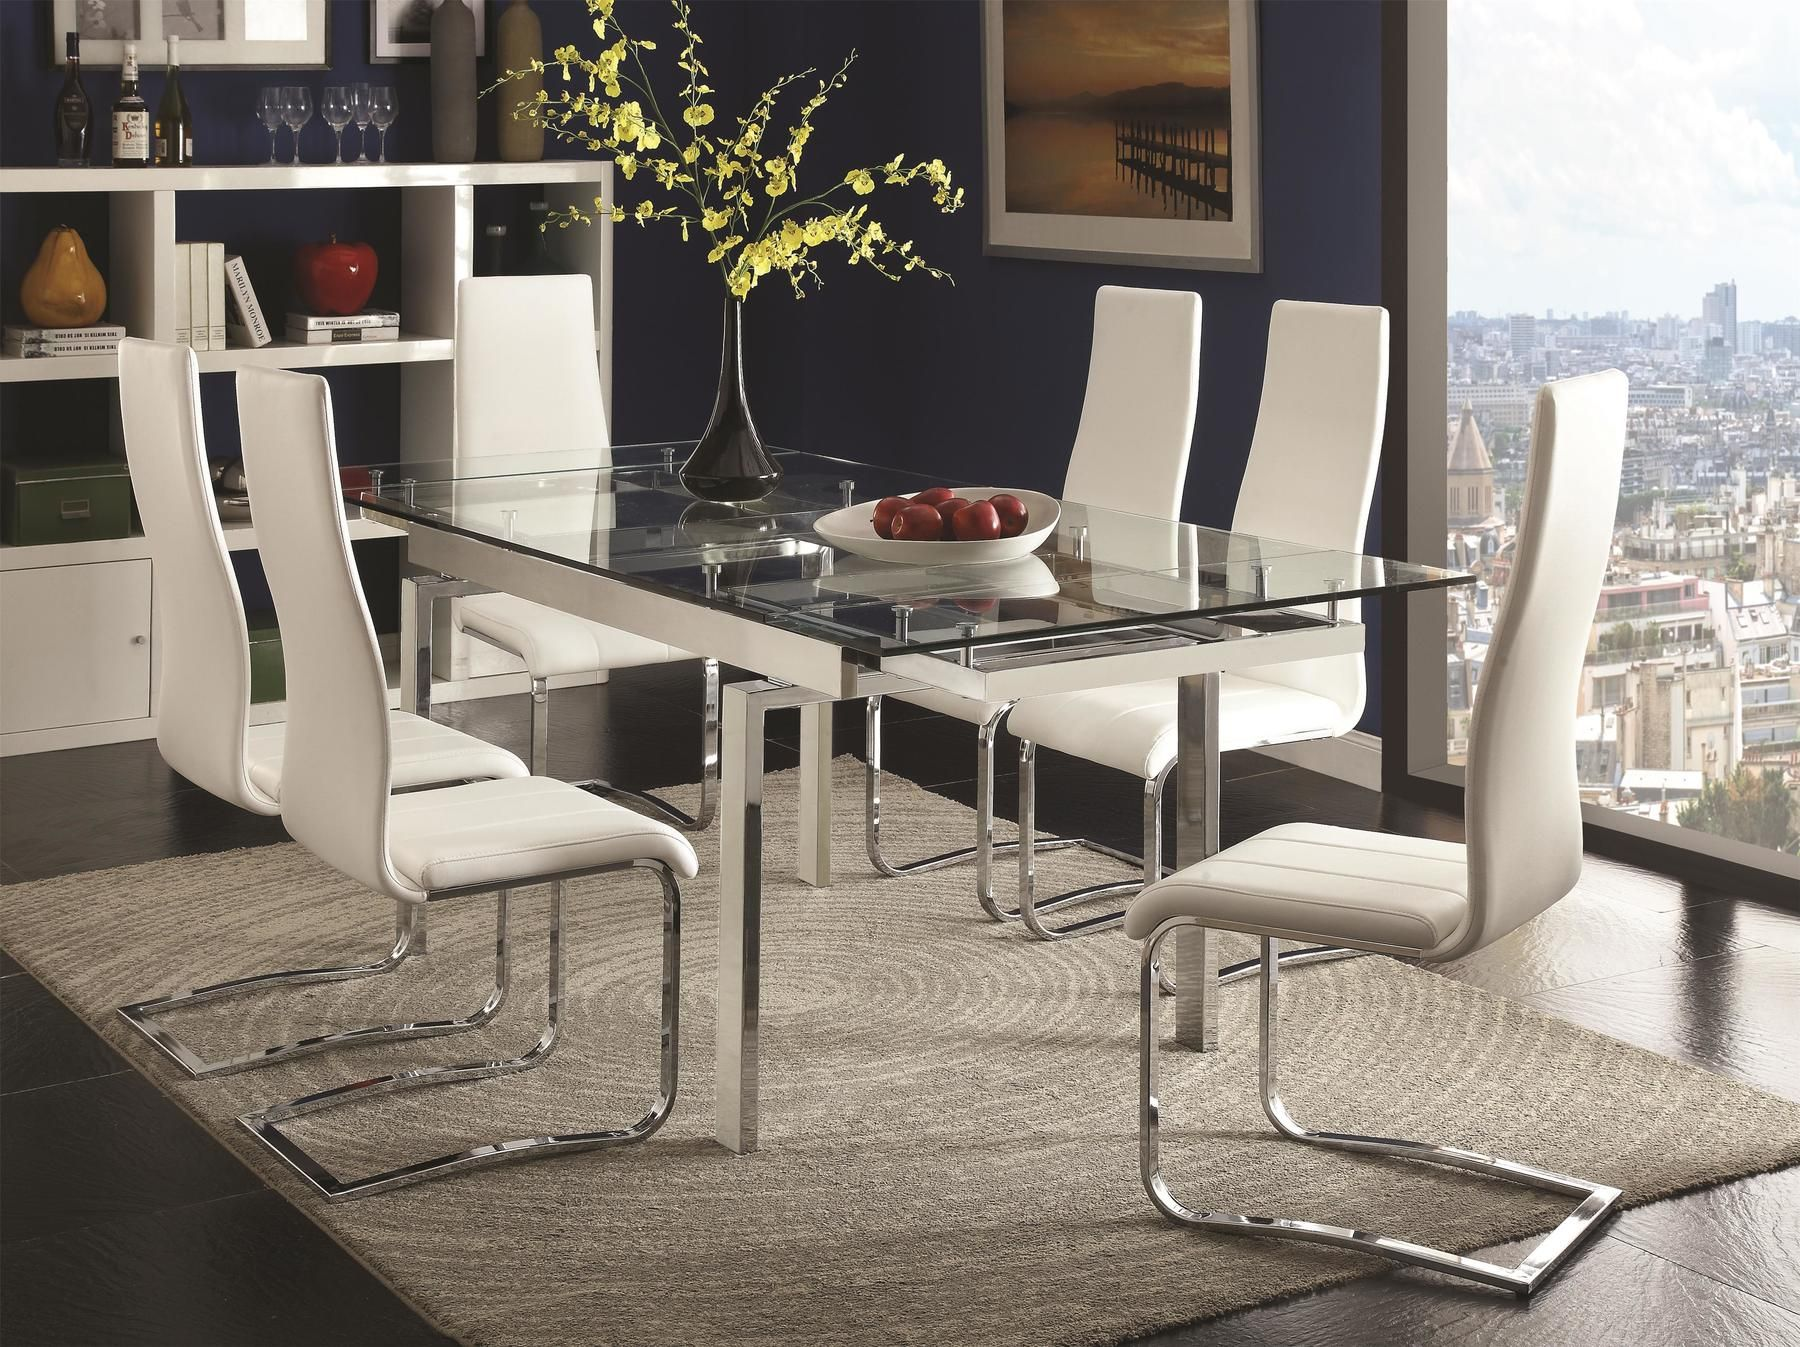 Coaster Wexford White Glass Chrome Modern Extension Dining Table Contemporary Dining Room Sets Metal Dining Table Glass Dining Room Sets